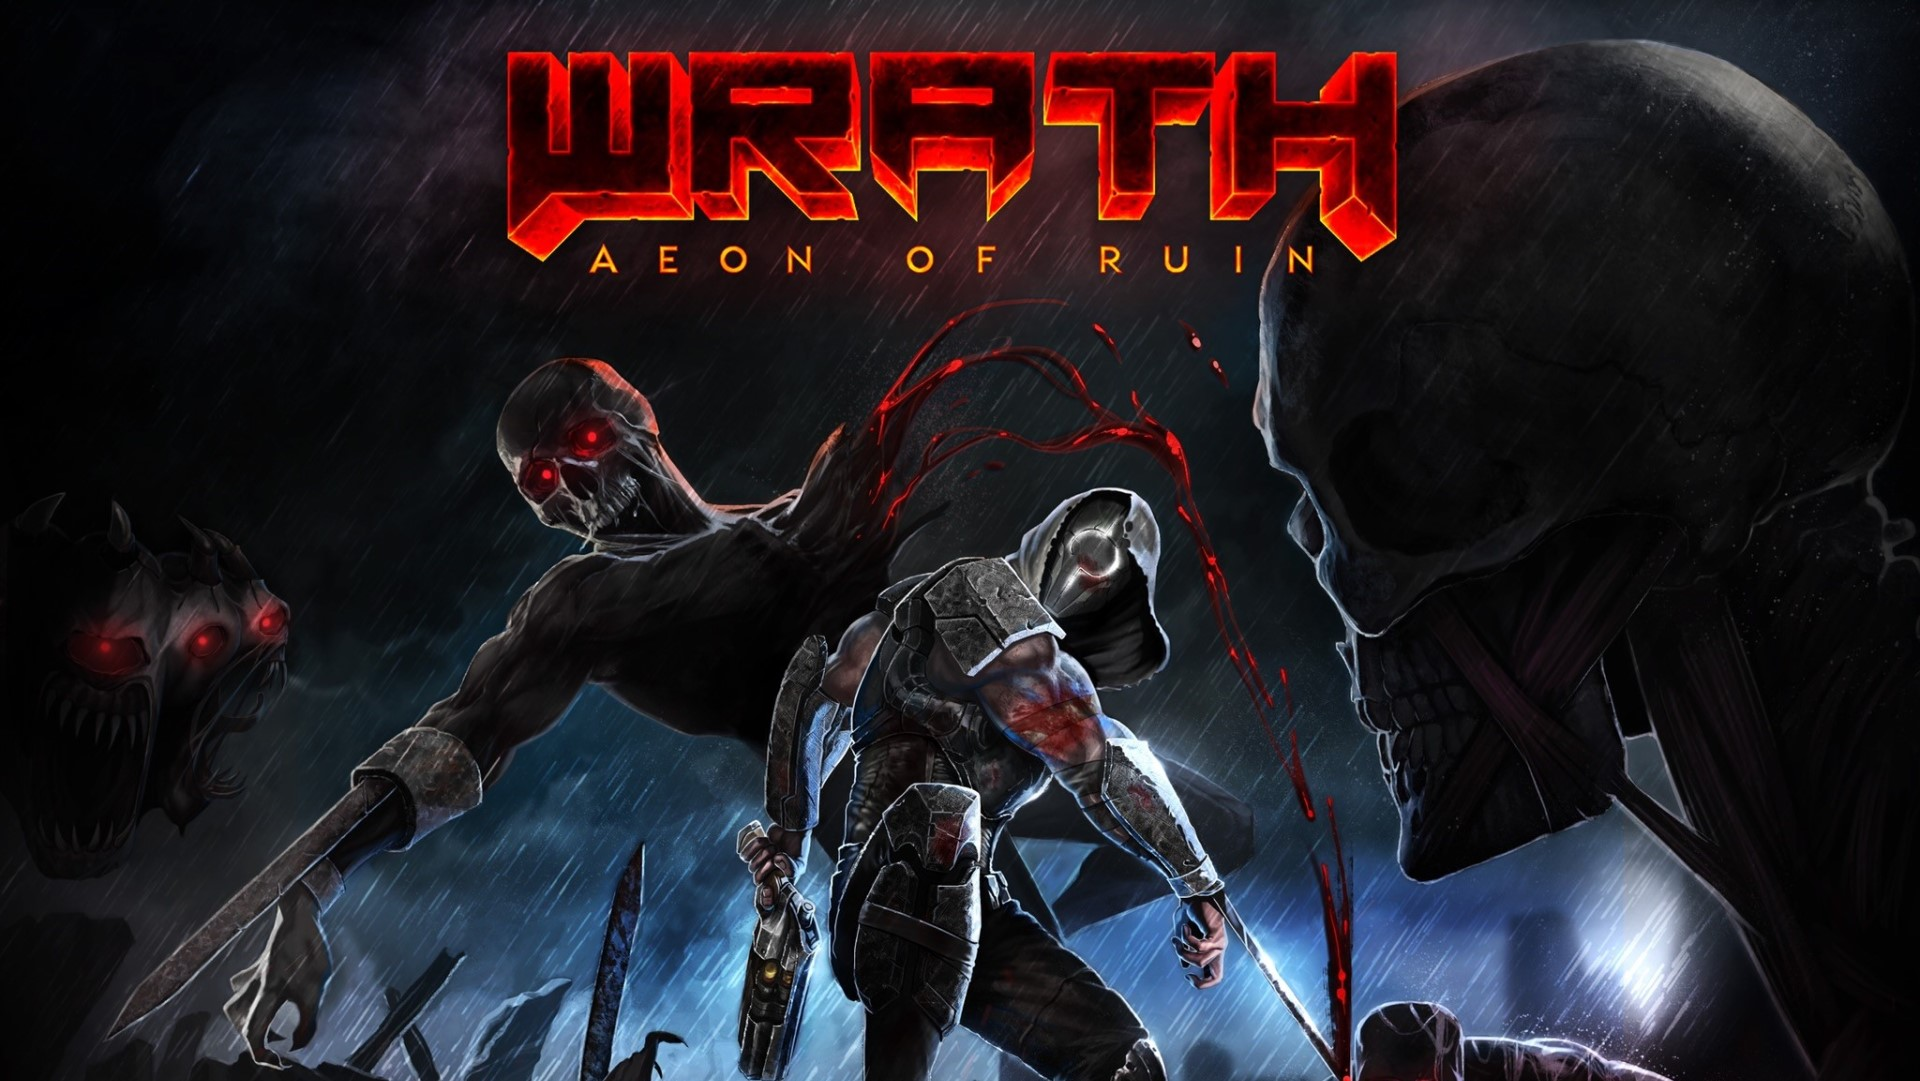 WRATH featured - WRATH: AEON OF RUIN GETS FIRST MAJOR EARLY ACCESS UPDATE